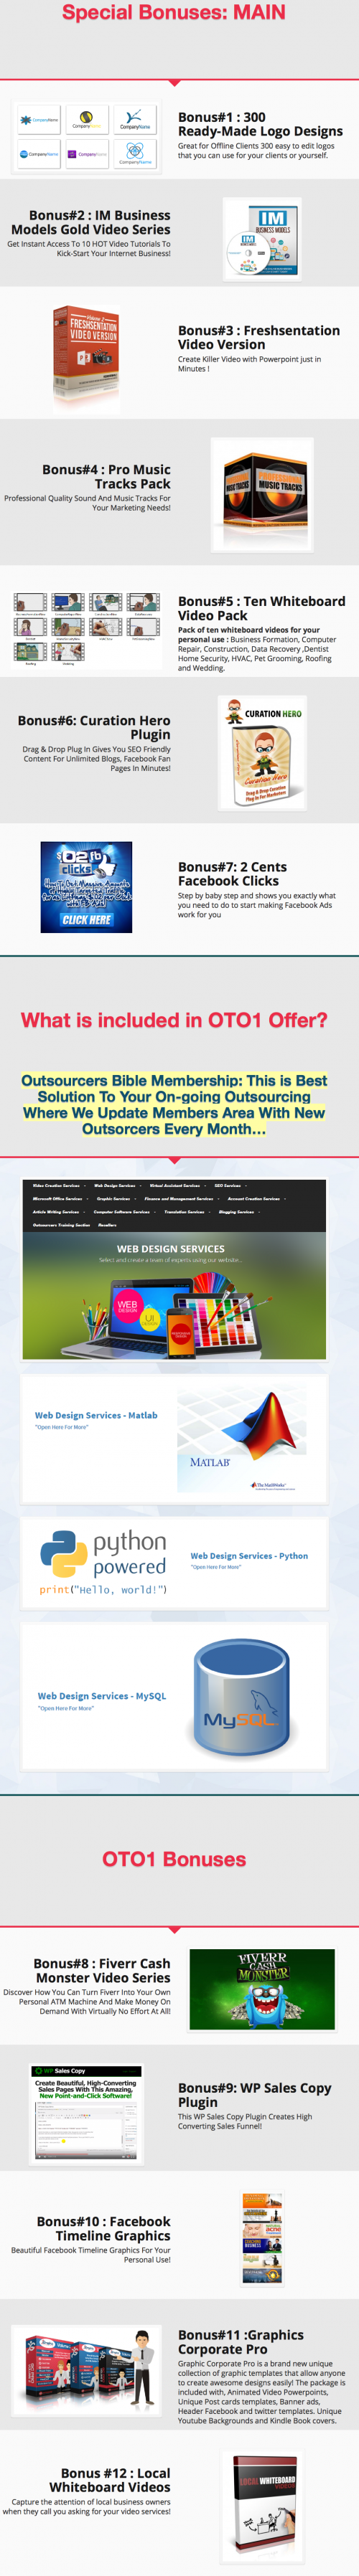 Outsourcers Bible Bonus Page - Outsourcers Bible 2016-08-14 19-02-57